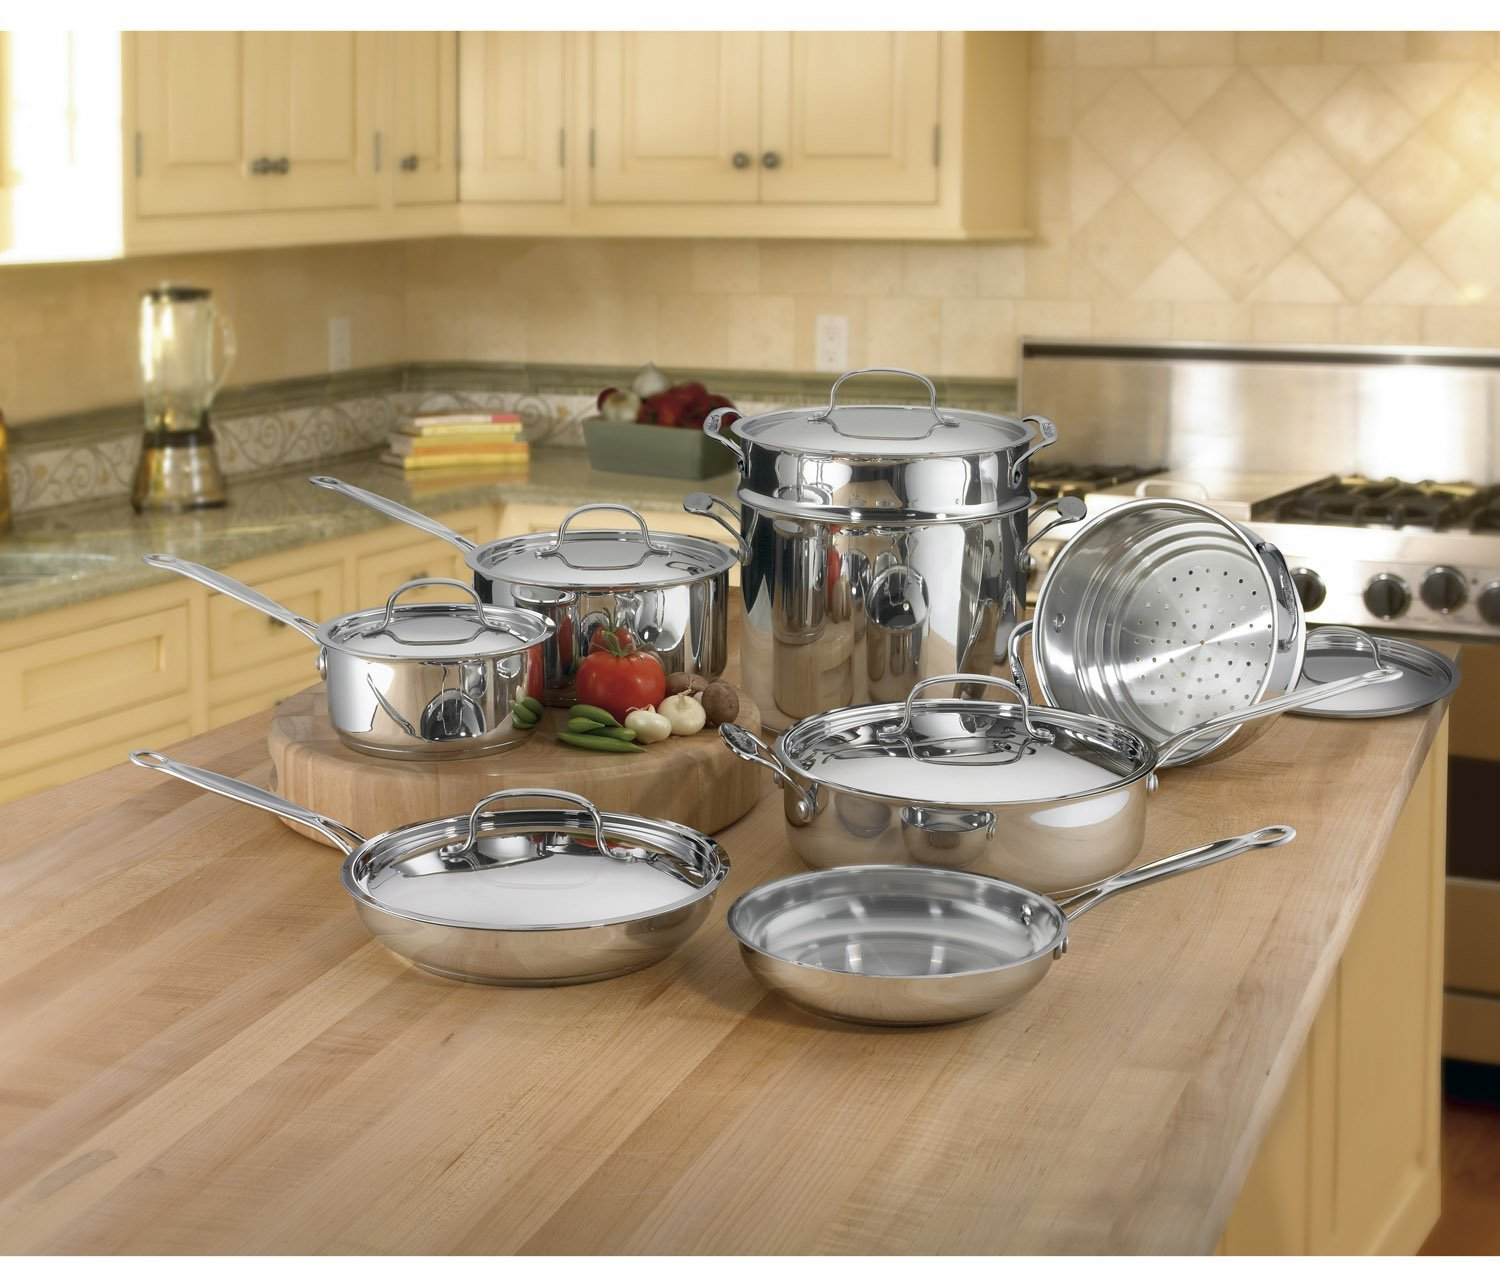 Cuisinart classic stainless cookware model 85-14sa